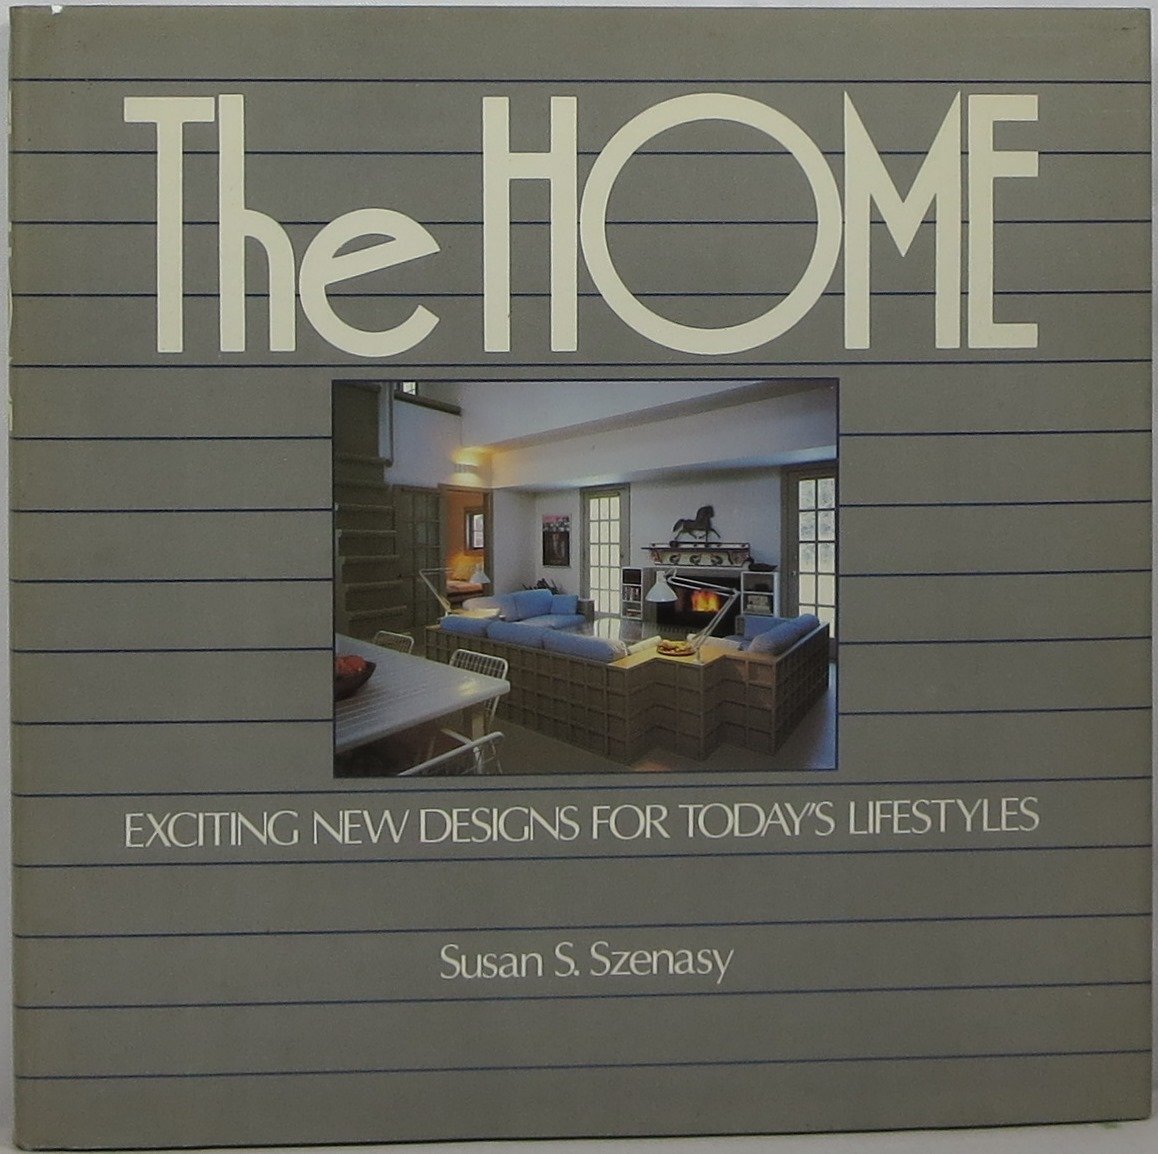 The Home: Exciting New Designs for Today's Lifestyles cover